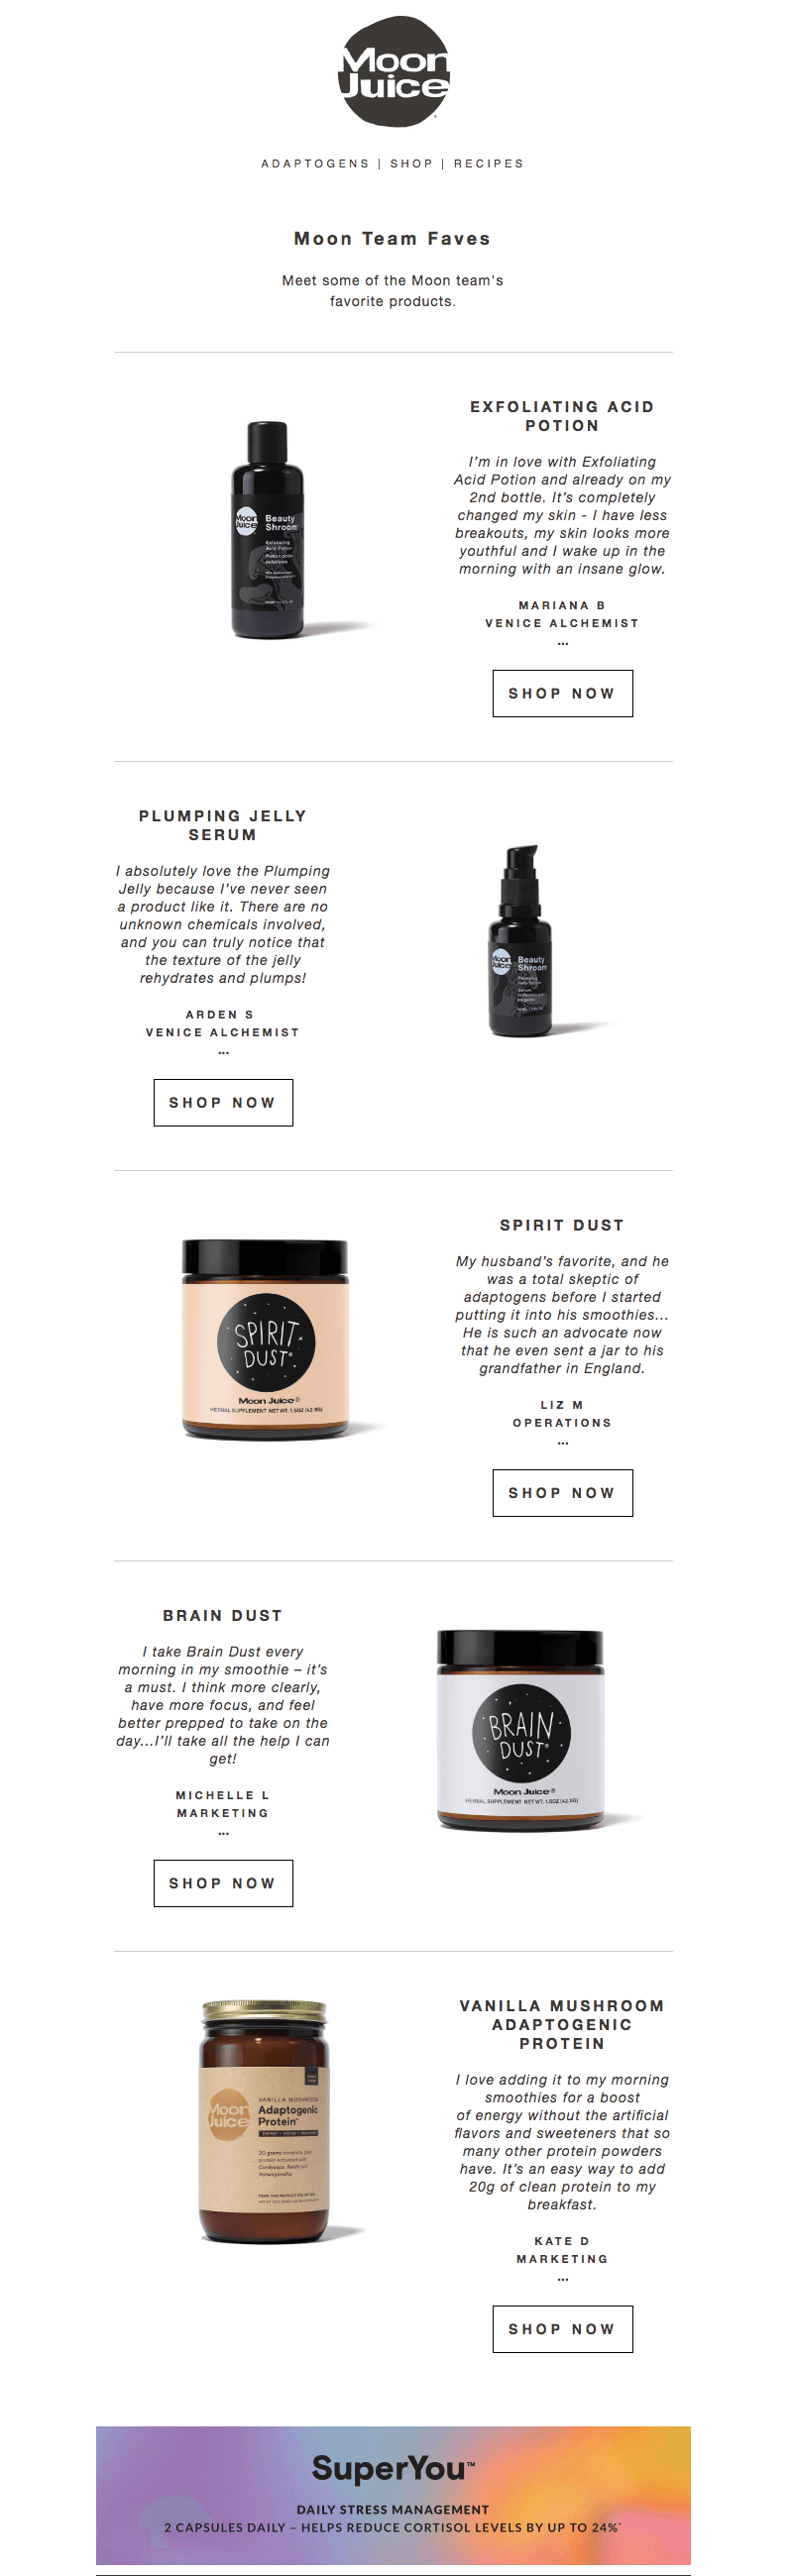 Skin Care Industry Emails With Stunning Designs Email Design Email Design Skin Care Skin